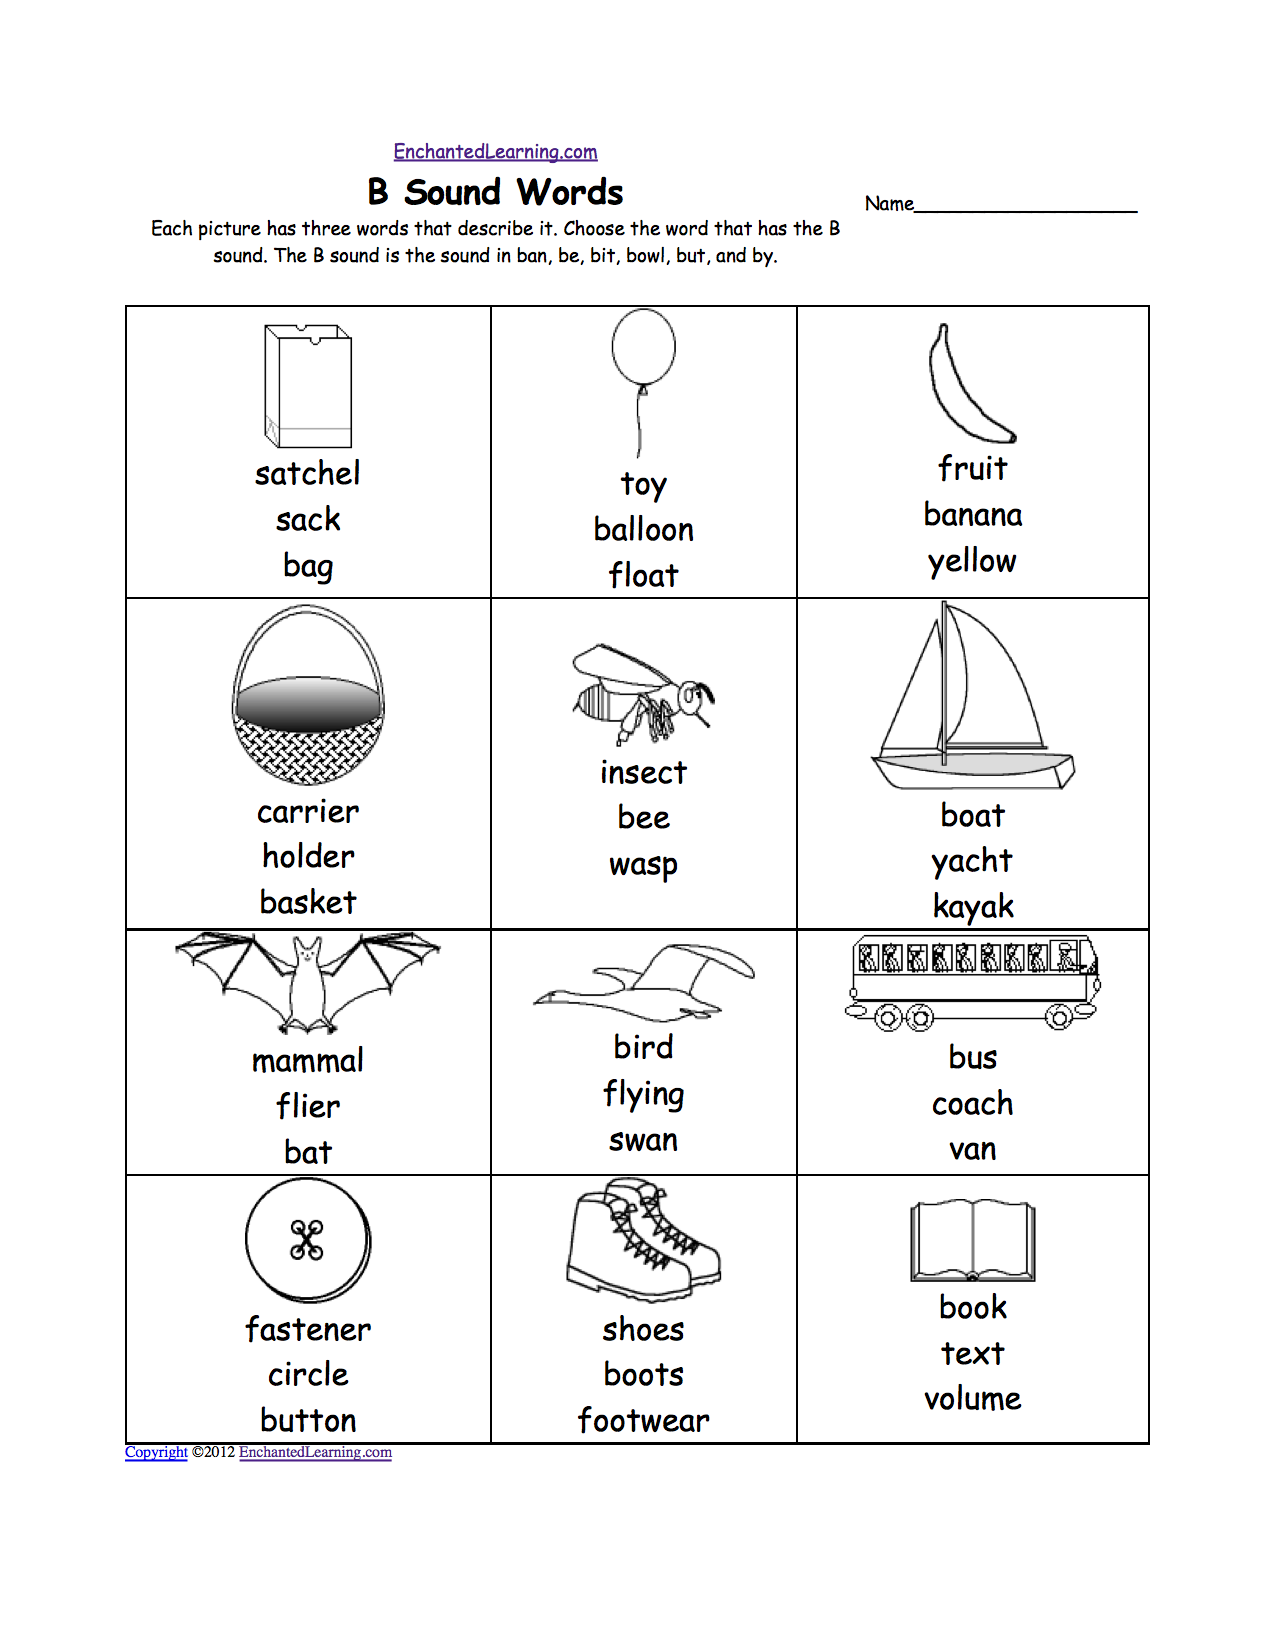 Aldiablosus  Nice Phonics Worksheets Multiple Choice Worksheets To Print  With Engaging Quotbquot Sound Phonics Worksheet Multiple Choice Each Picture Has Three Words That Describe It Choose The Word That Has A Quotbquot Sound The Quotbquot Sound Is The Sound  With Beauteous Personal Information Worksheets Also Free Printable Abc Worksheets For Preschoolers In Addition Rounding Numbers Worksheets Rd Grade And Context Clues Middle School Worksheets As Well As Child Development Theorists Worksheet Additionally Mental Math Worksheets Grade  From Enchantedlearningcom With Aldiablosus  Engaging Phonics Worksheets Multiple Choice Worksheets To Print  With Beauteous Quotbquot Sound Phonics Worksheet Multiple Choice Each Picture Has Three Words That Describe It Choose The Word That Has A Quotbquot Sound The Quotbquot Sound Is The Sound  And Nice Personal Information Worksheets Also Free Printable Abc Worksheets For Preschoolers In Addition Rounding Numbers Worksheets Rd Grade From Enchantedlearningcom